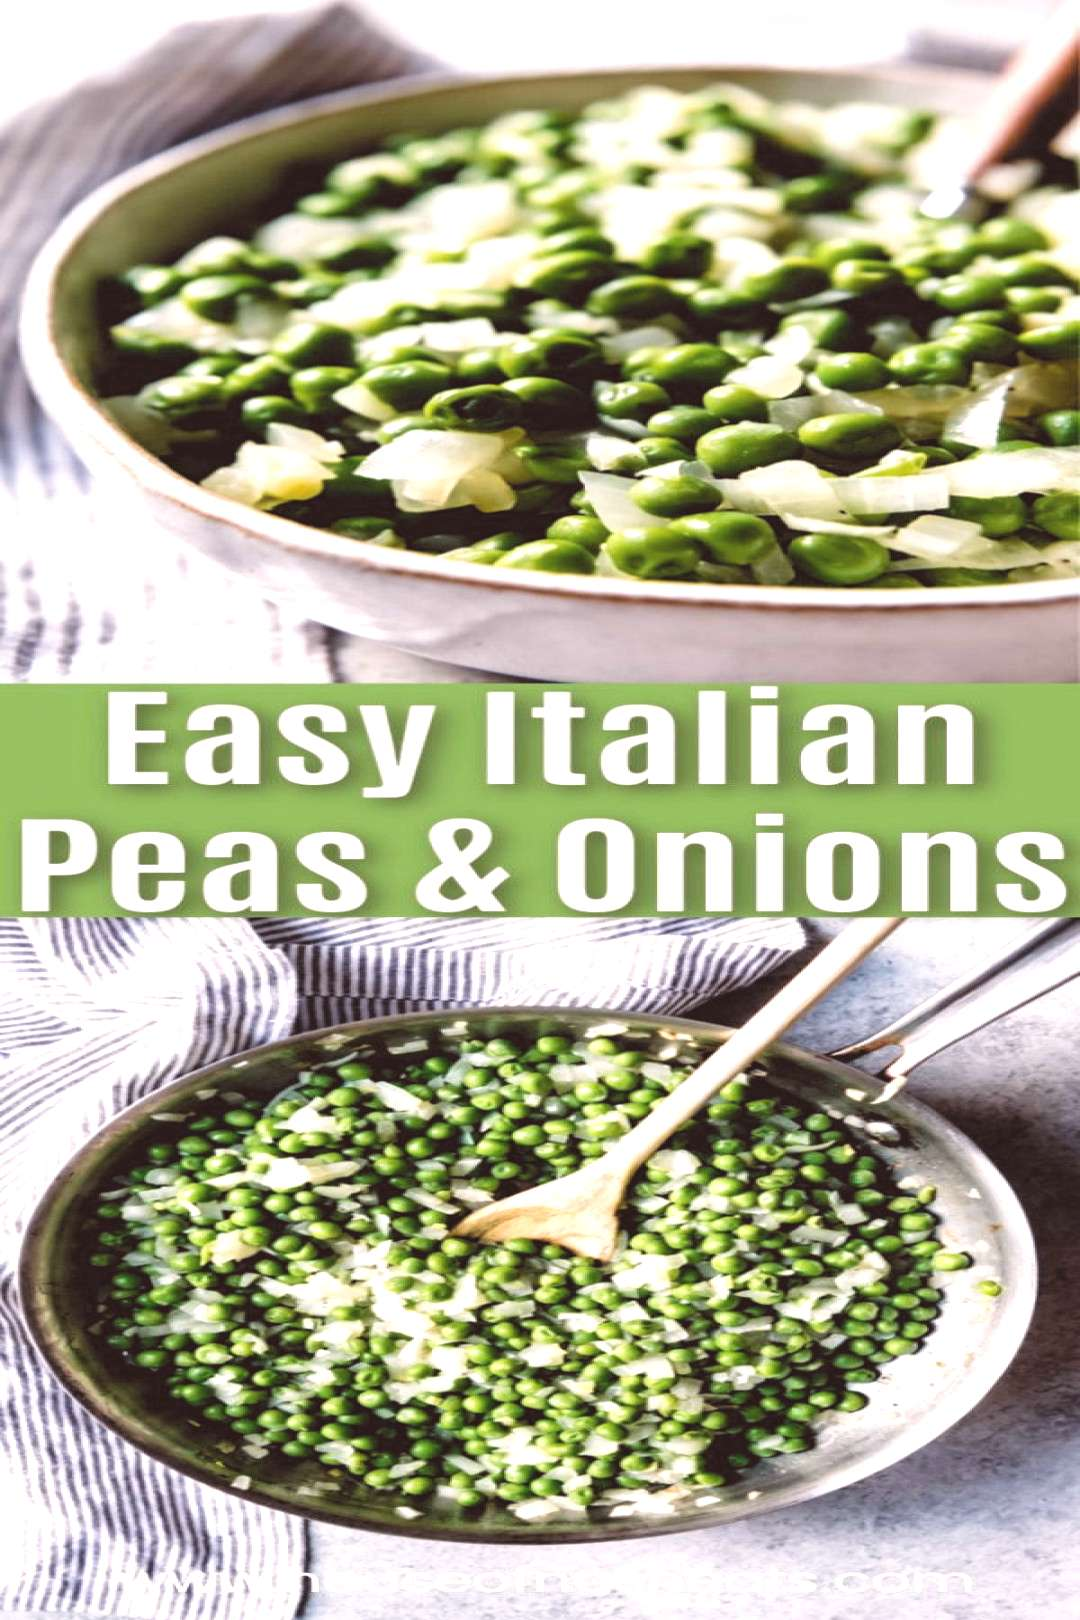 This easy Italian Peas recipe is simple and quick for a weeknight dinner but special enough to serv